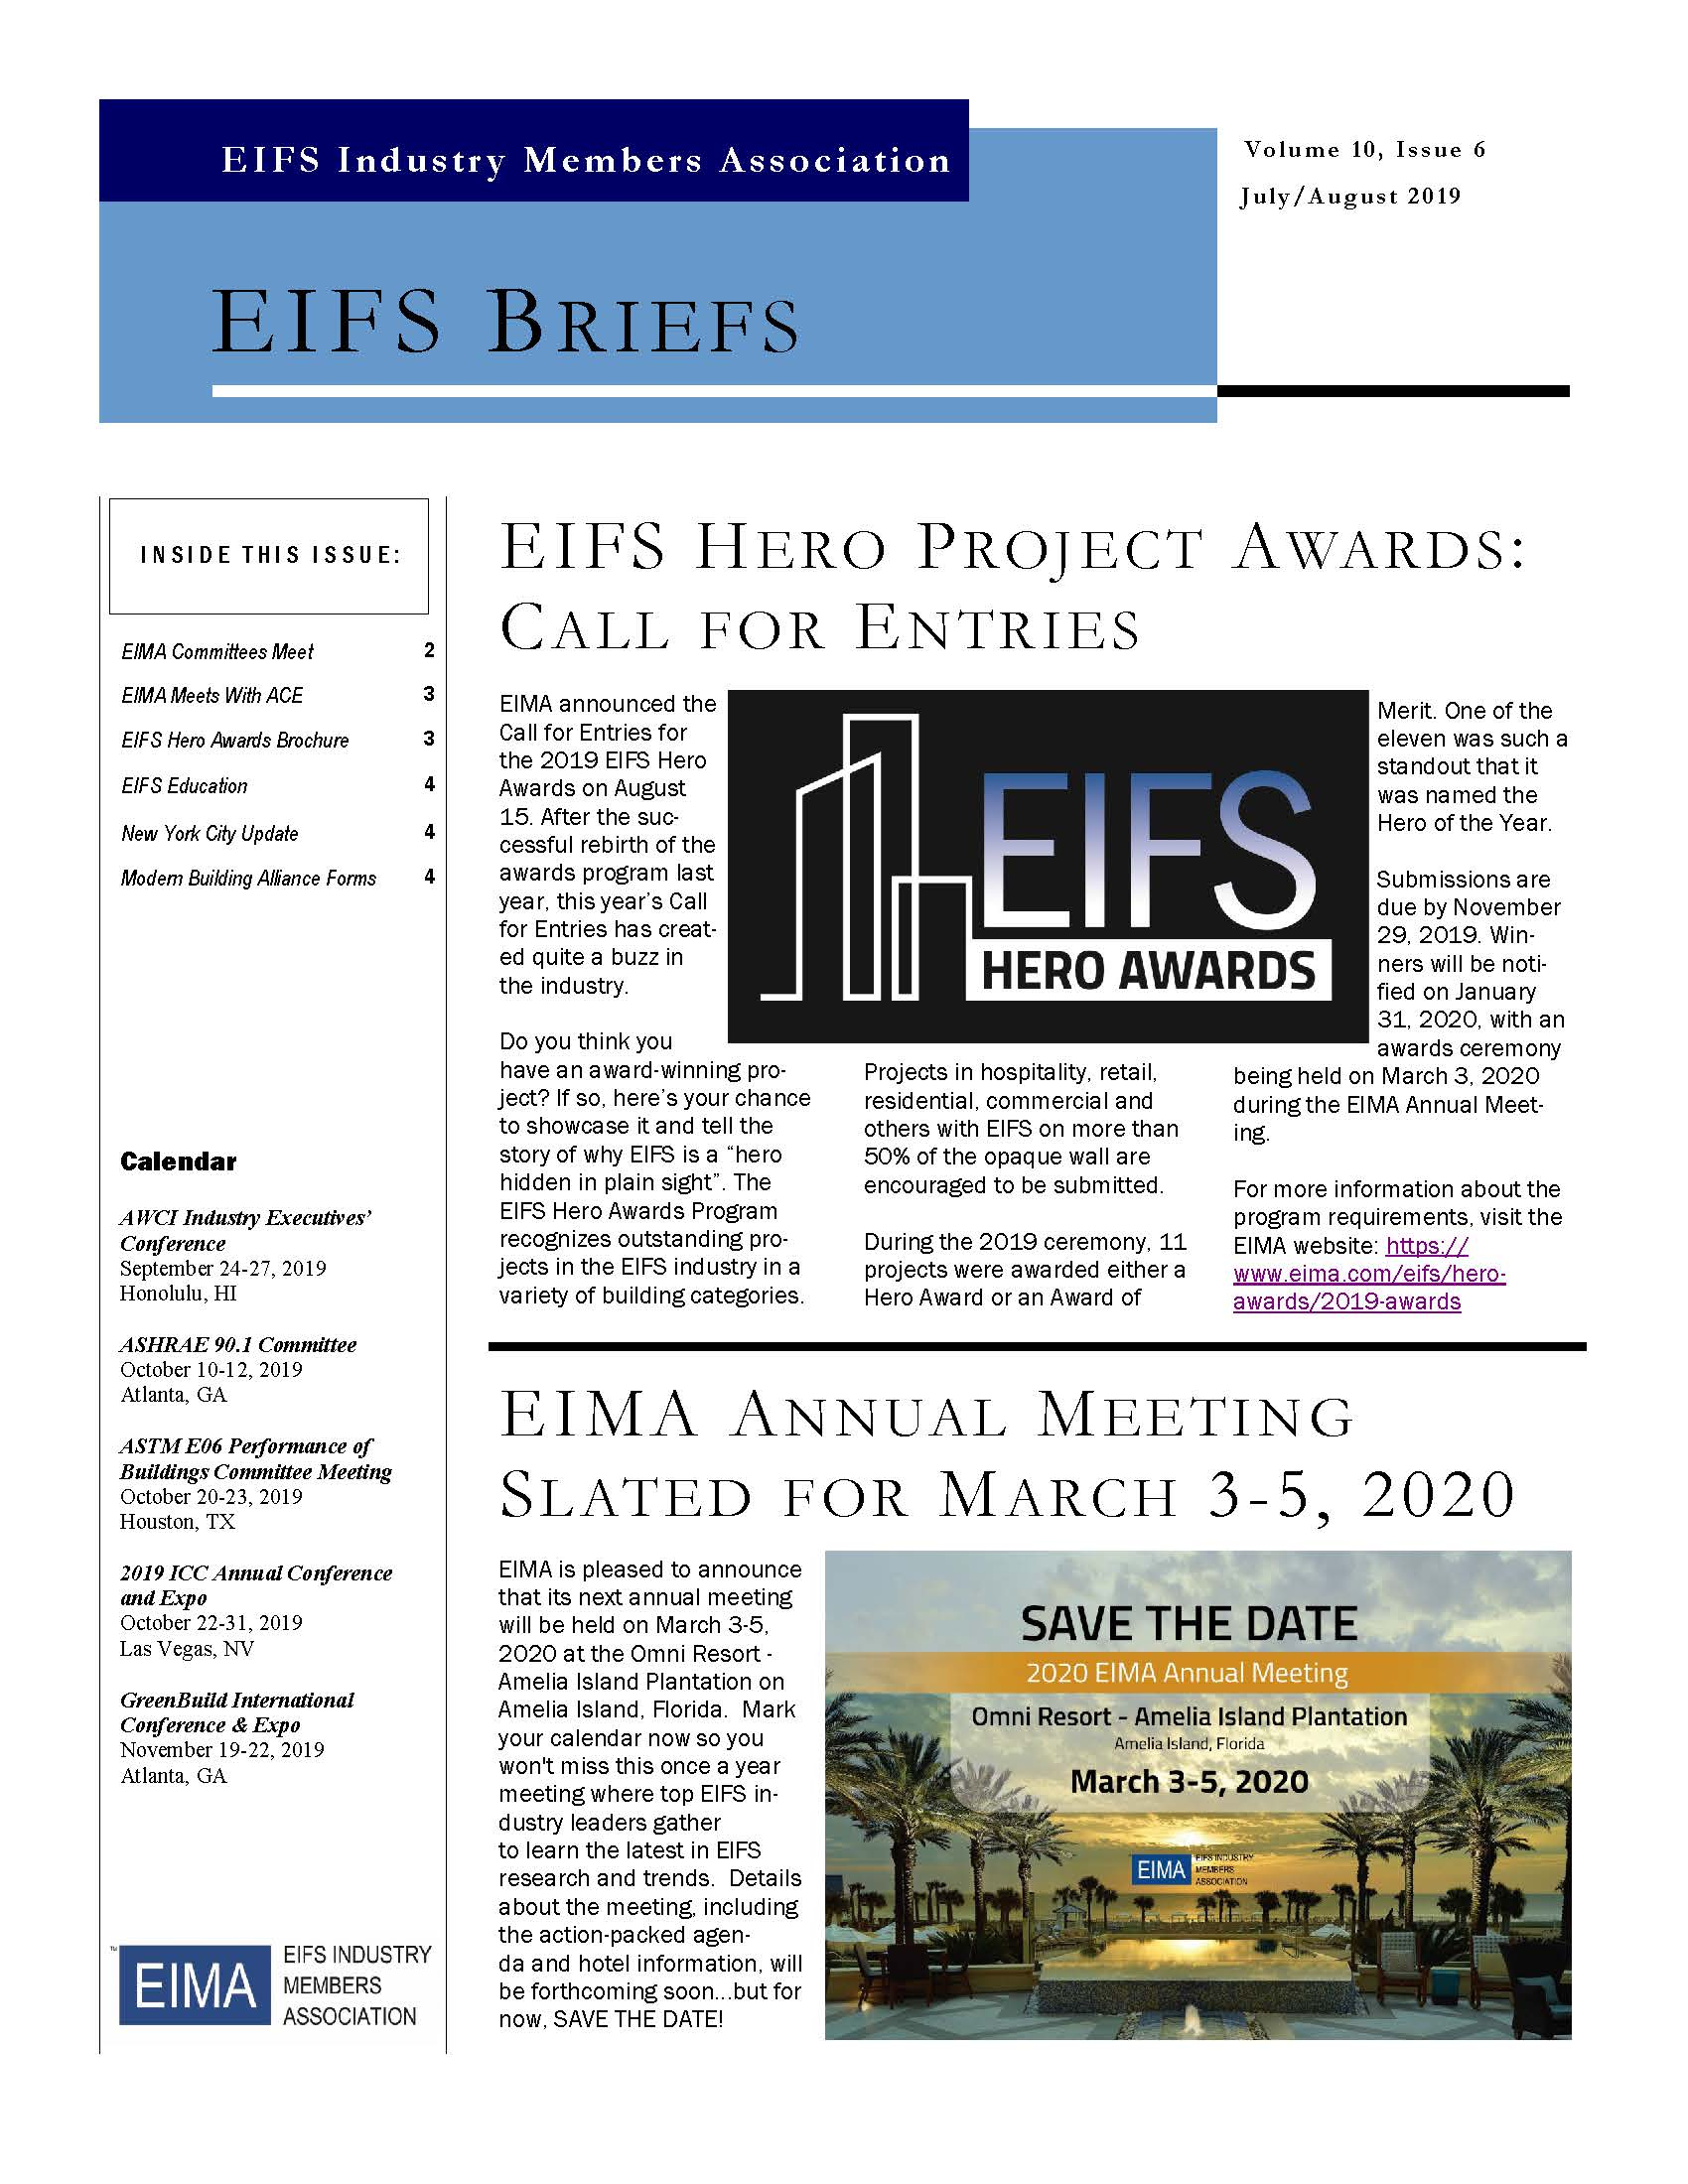 EIFS Briefs - Vol 10, Issue 6 - EIFS Industry Members Association - EIMA Newsletter